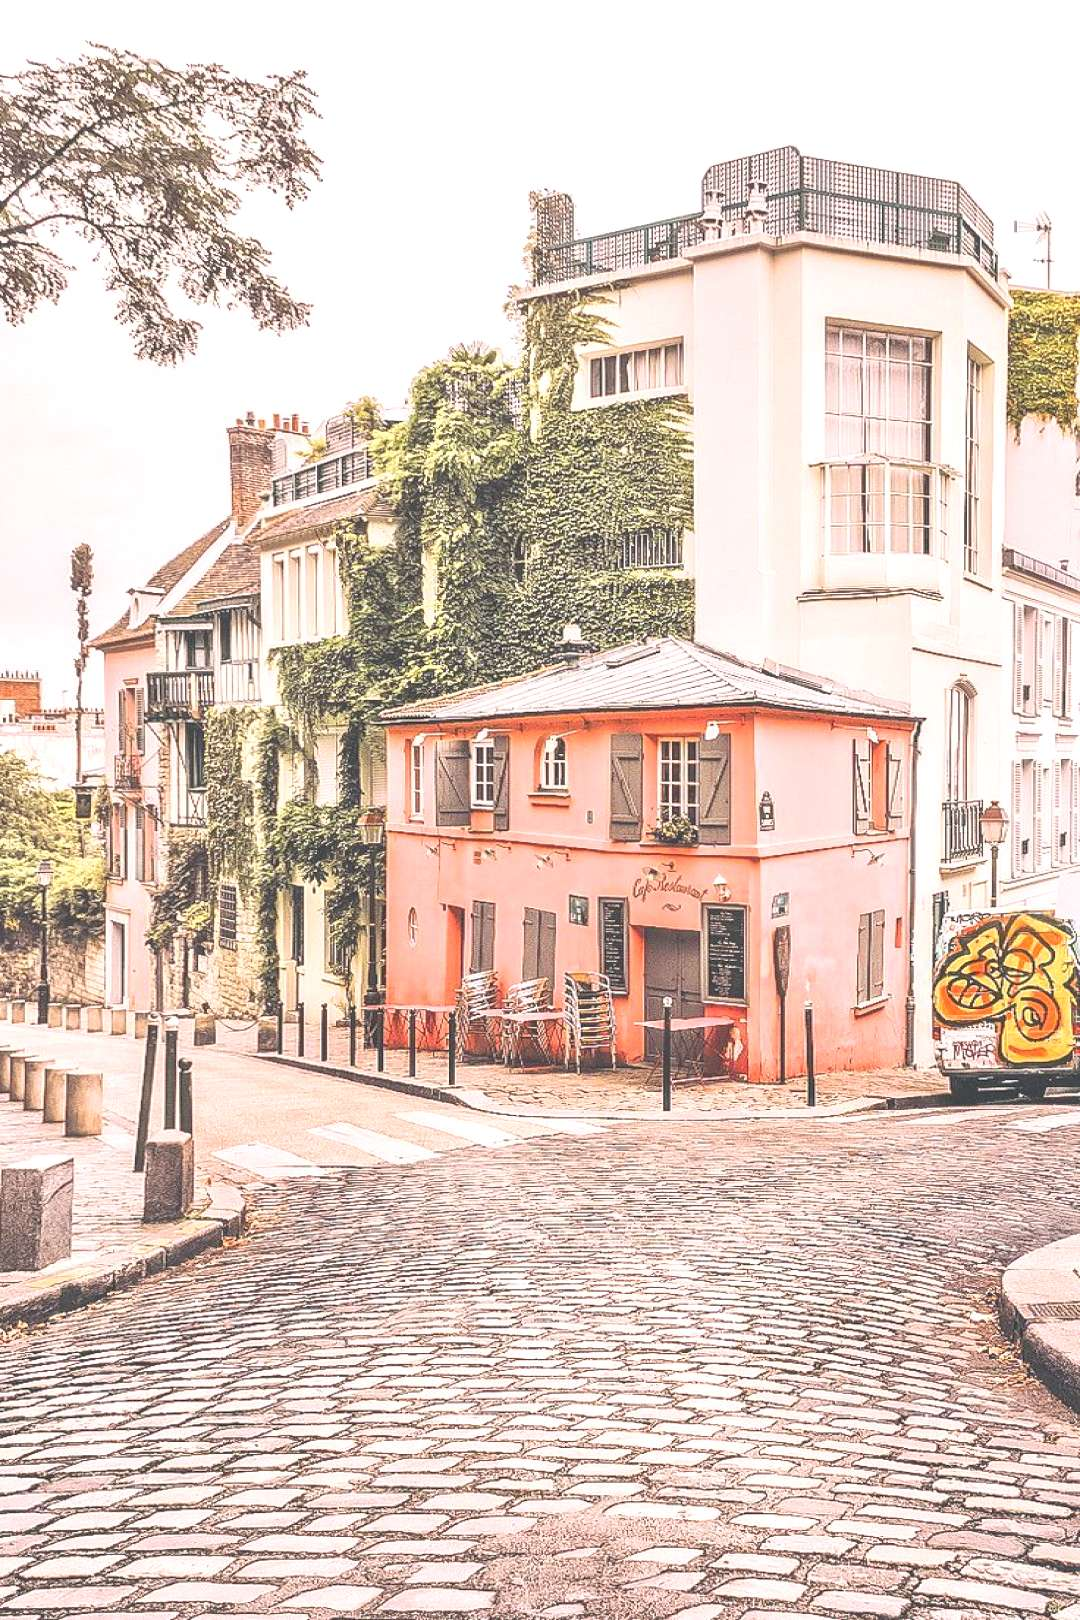 2 day Paris Itinerary! Find the best places to visit in Paris in 2 days. Explore the best of France